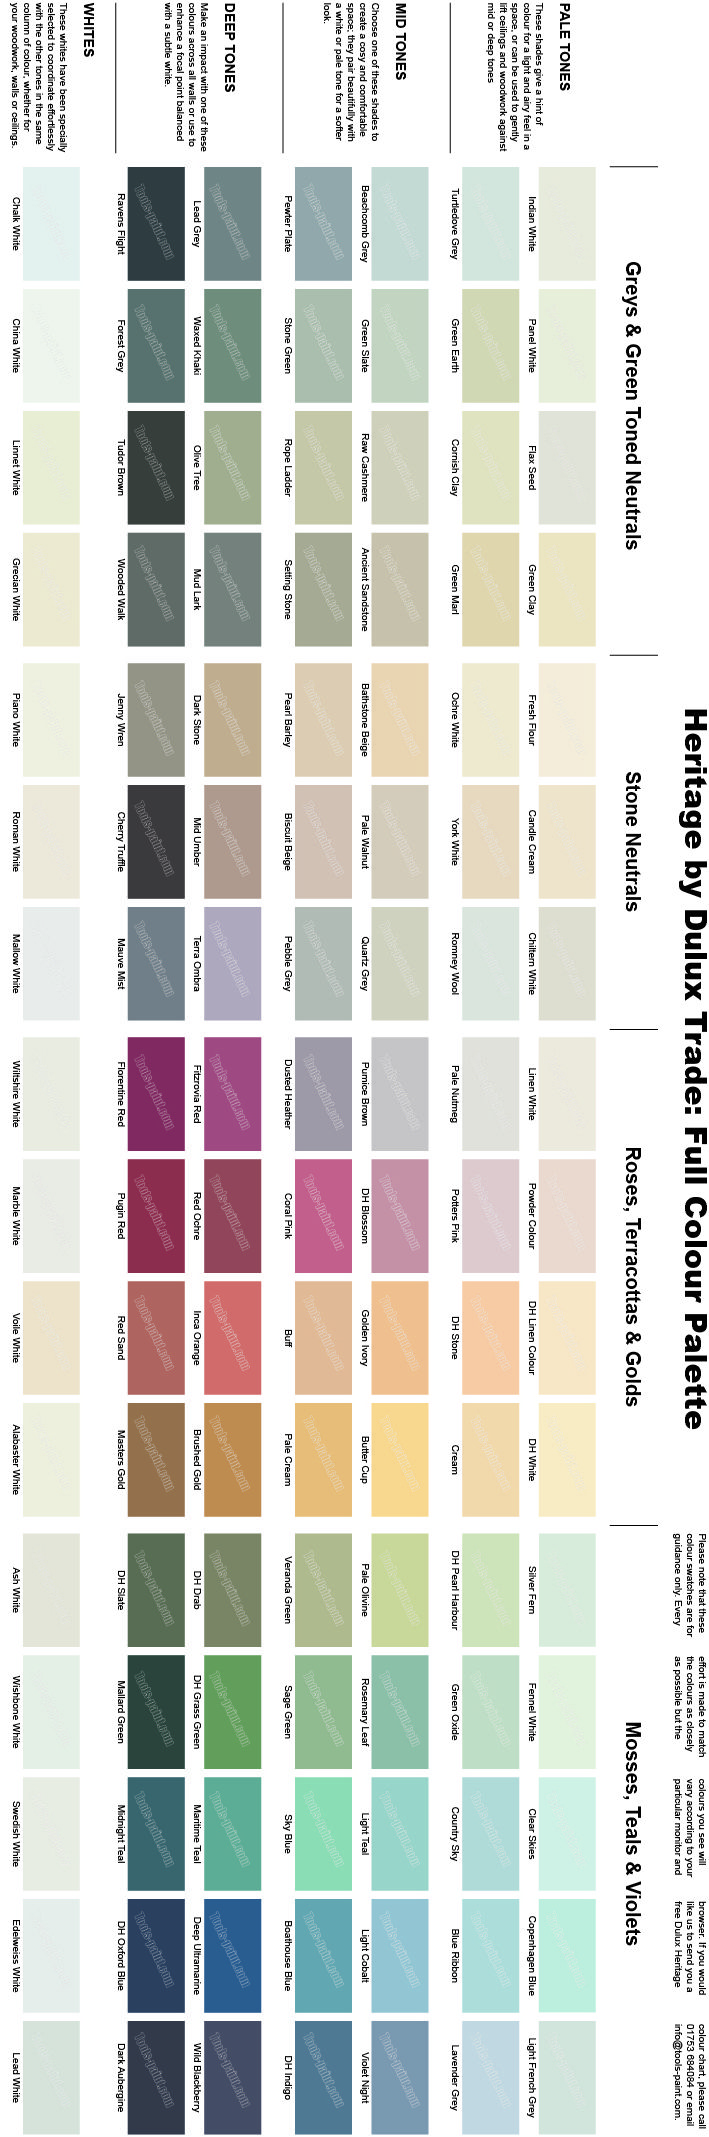 Best 25 dulux paint colours ideas on pinterest dulux paint colours lounge dulux paint - Dulux exterior wood paint colour chart pict ...